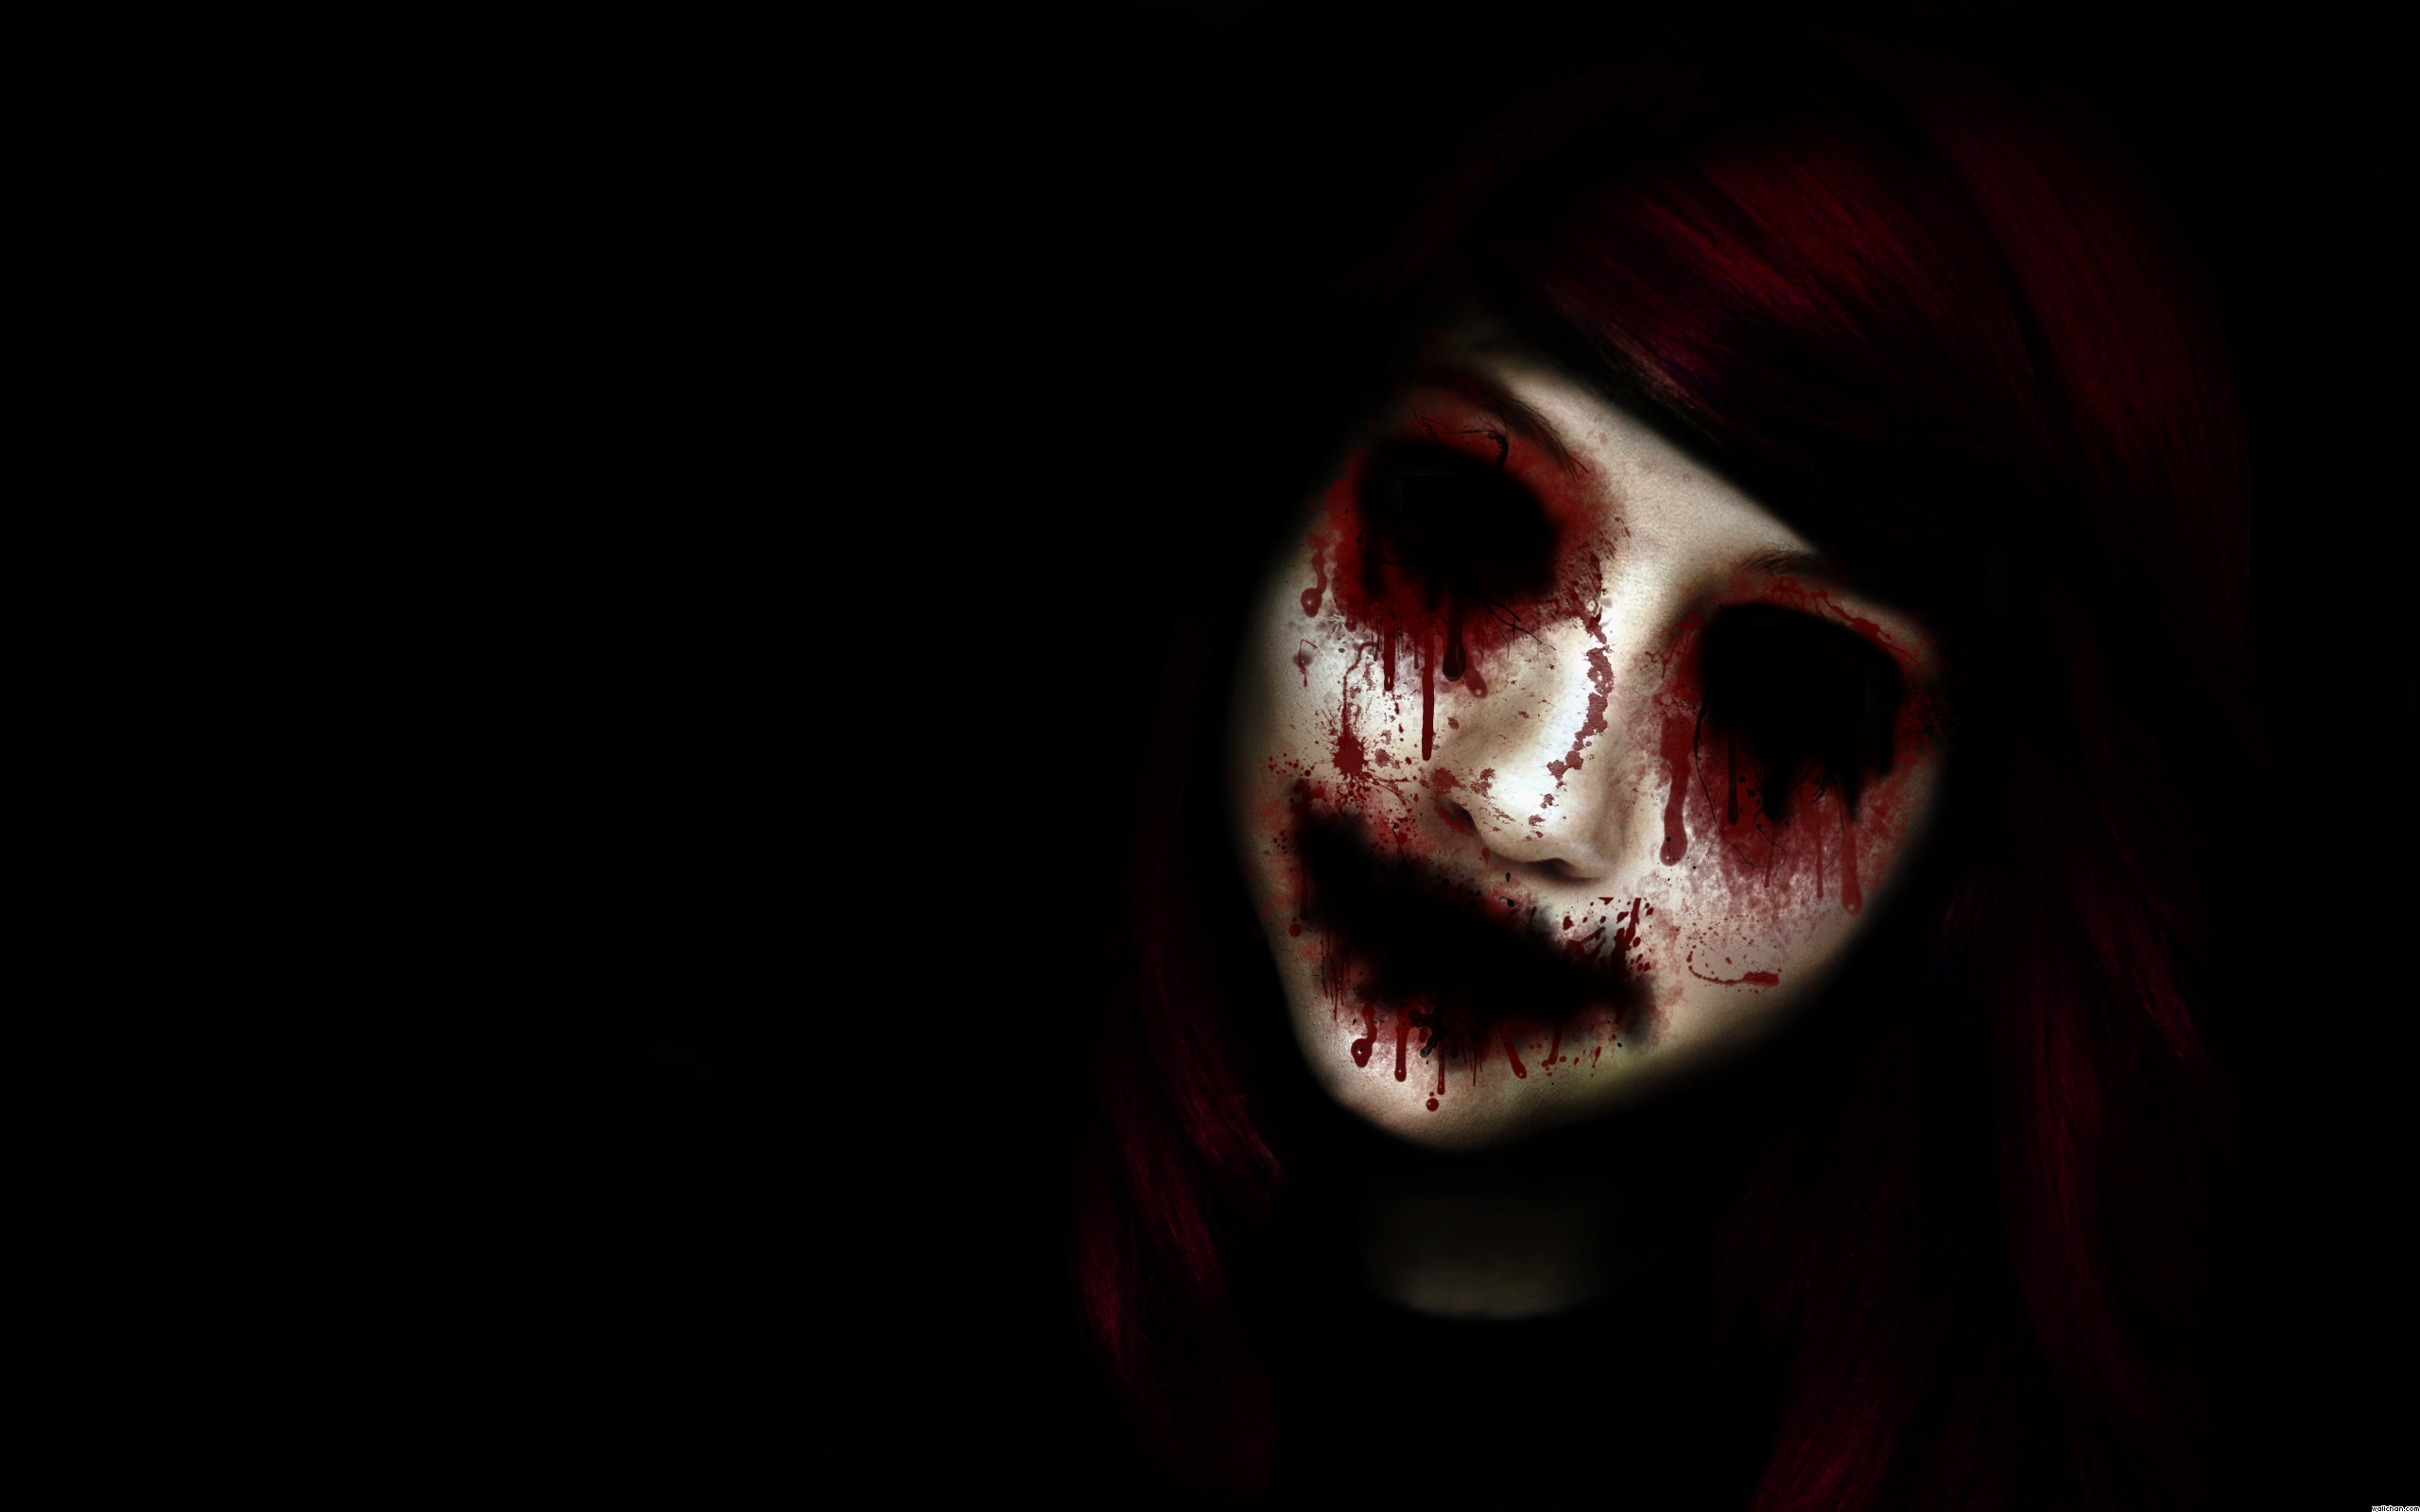 Creepy Res: 2560x1600 / Size:655kb. Views: 311443. More Wallpapers (general) wallpapers